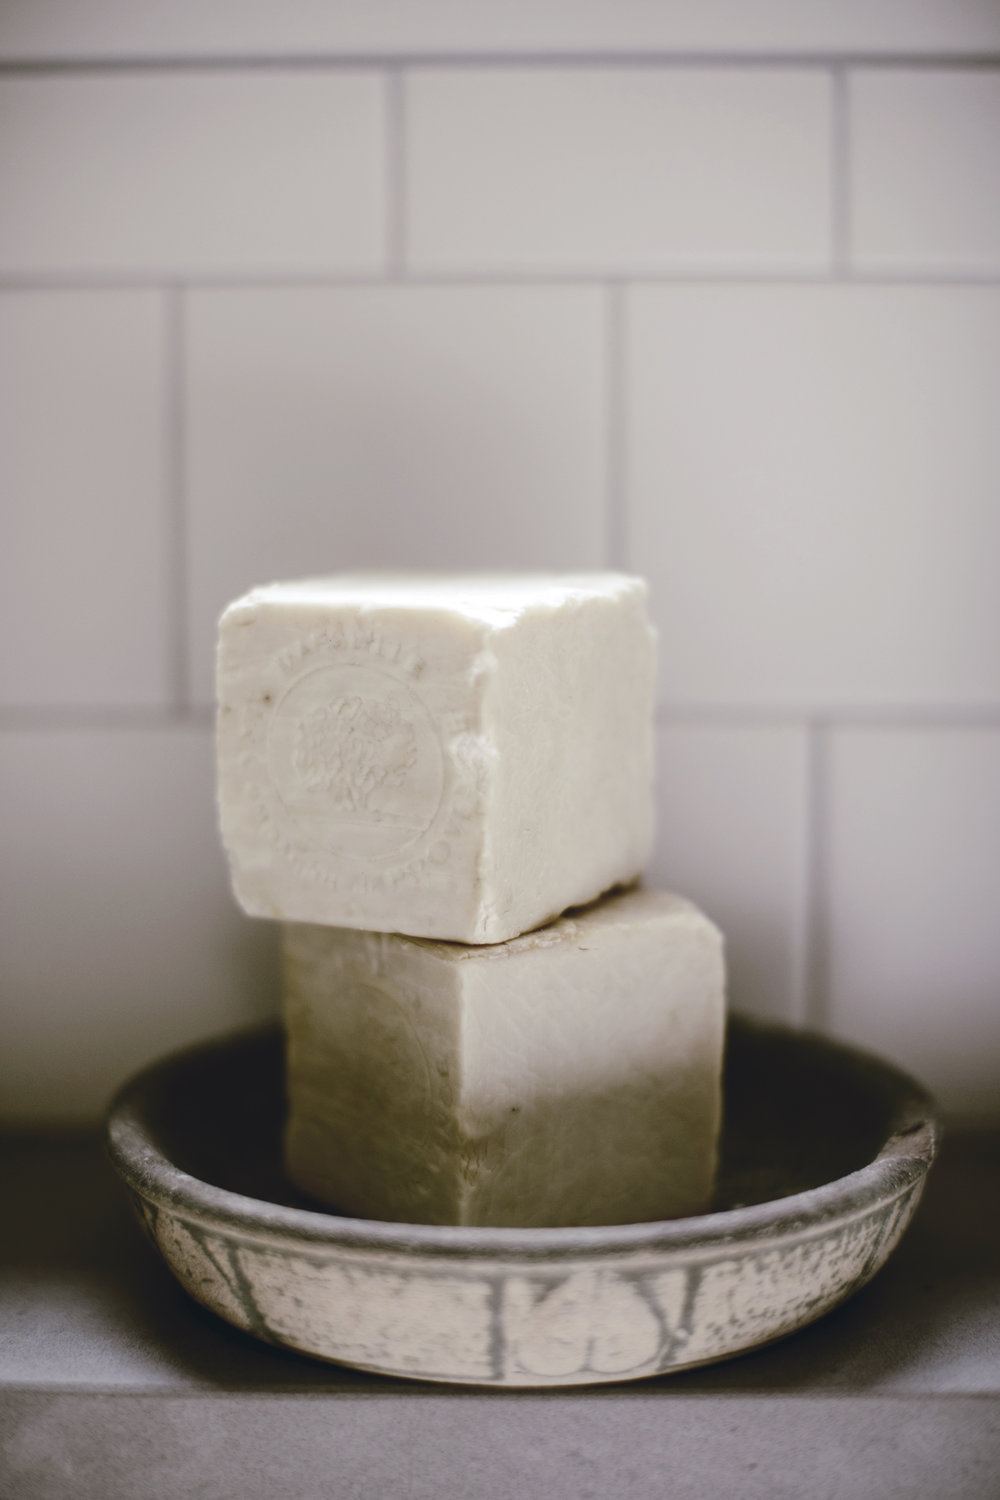 cubes of French soap / heirloomed